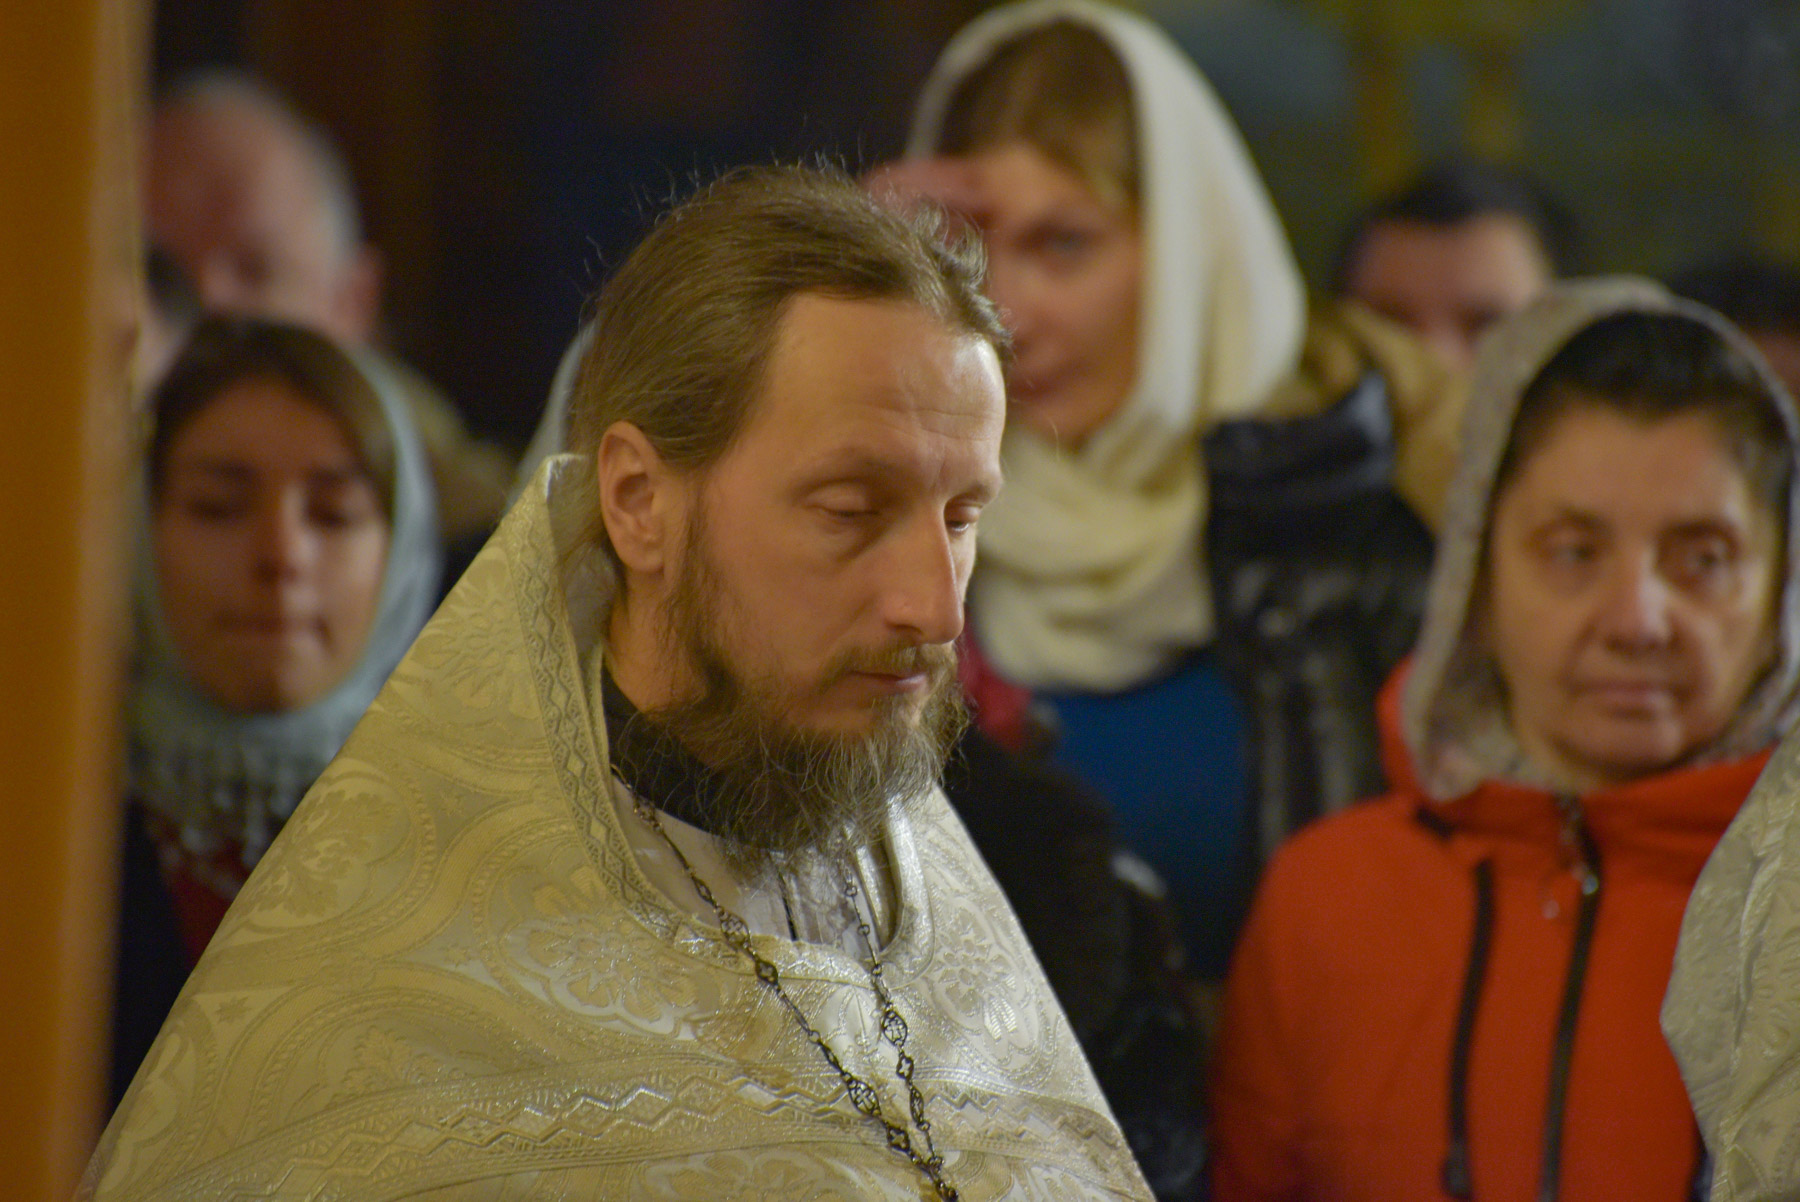 photos of orthodox christmas 0027 1